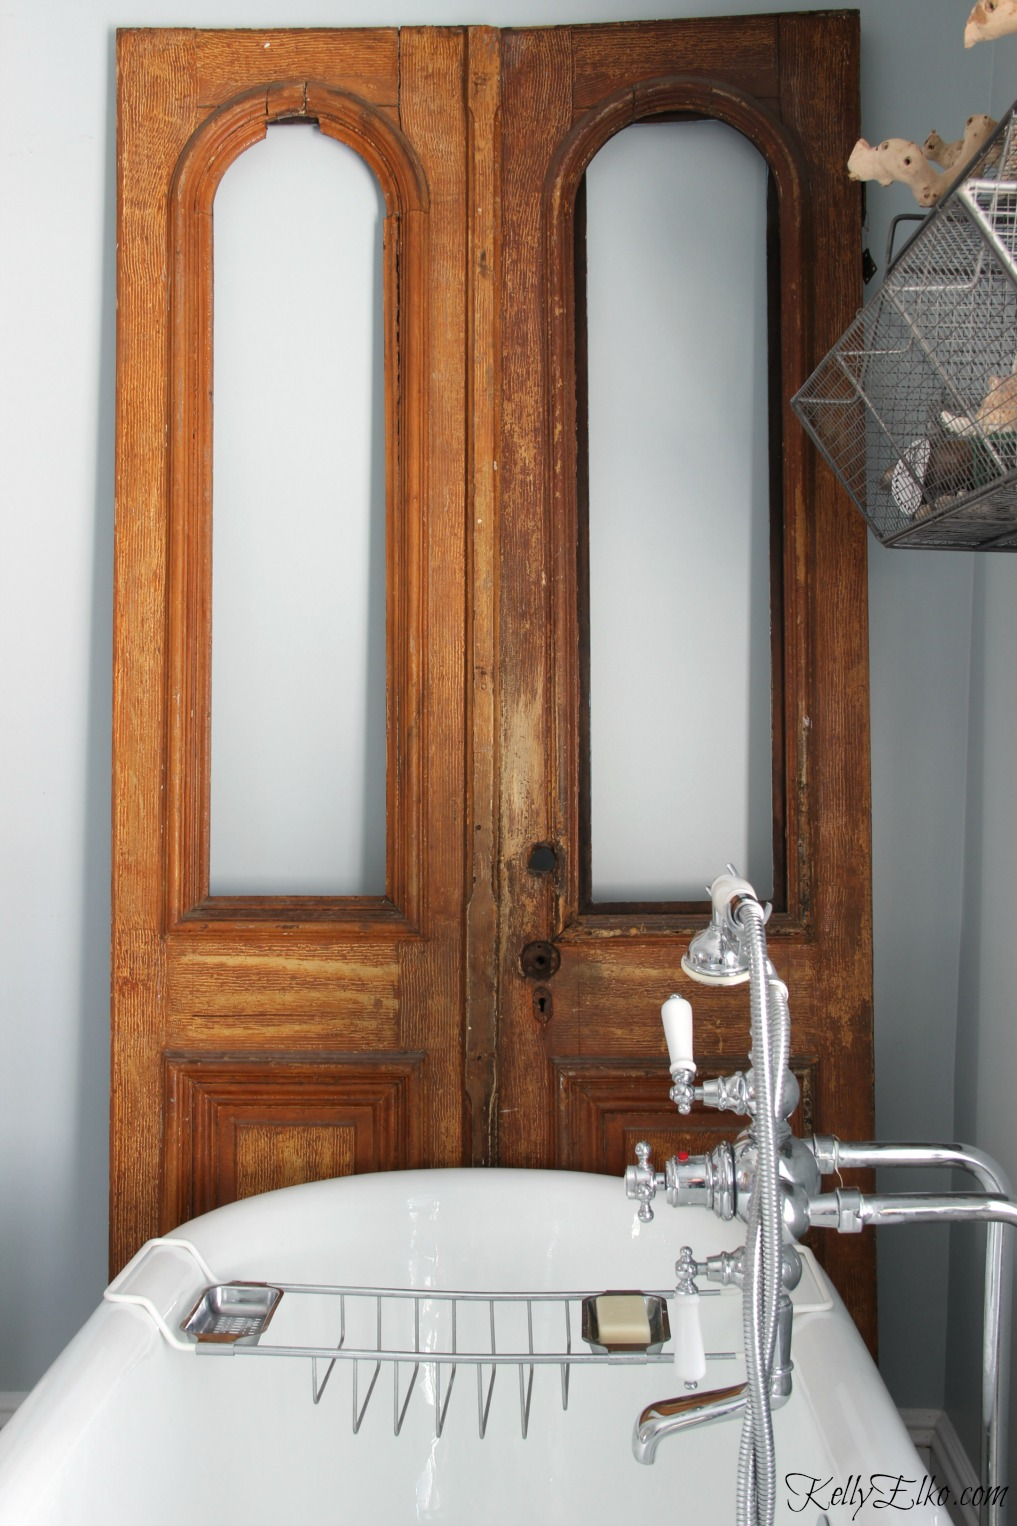 Add antique pieces to a bathroom to add warmth - love these antique arched doors kellyelko.com